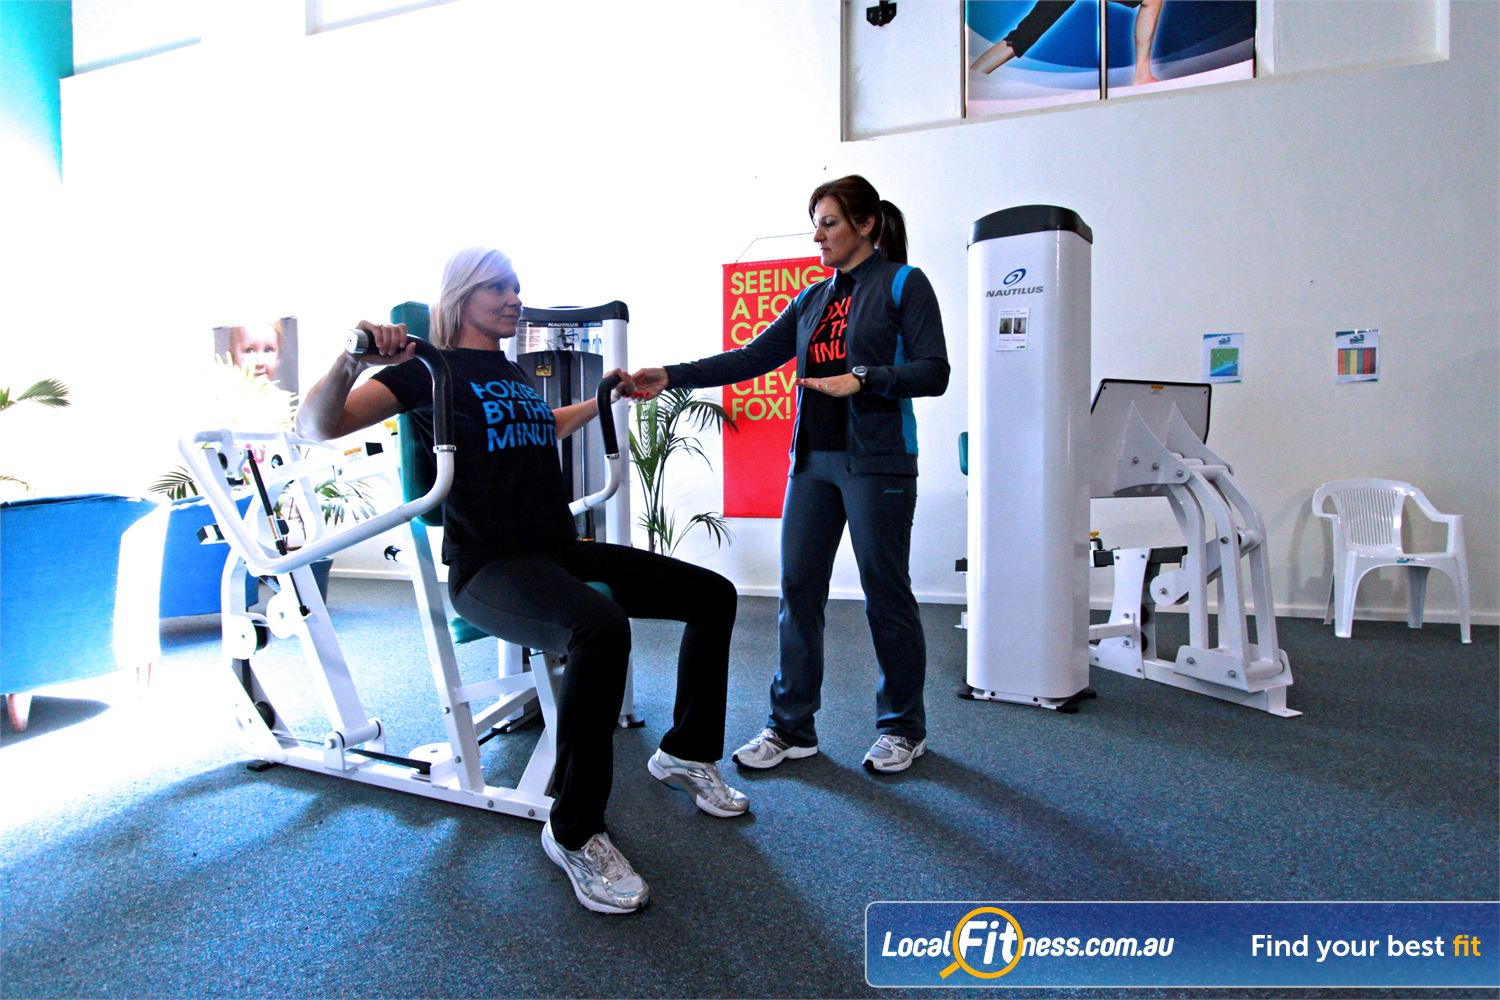 Fernwood Fitness Near East Corrimal Not all women strength training is equal. Equipment matters!